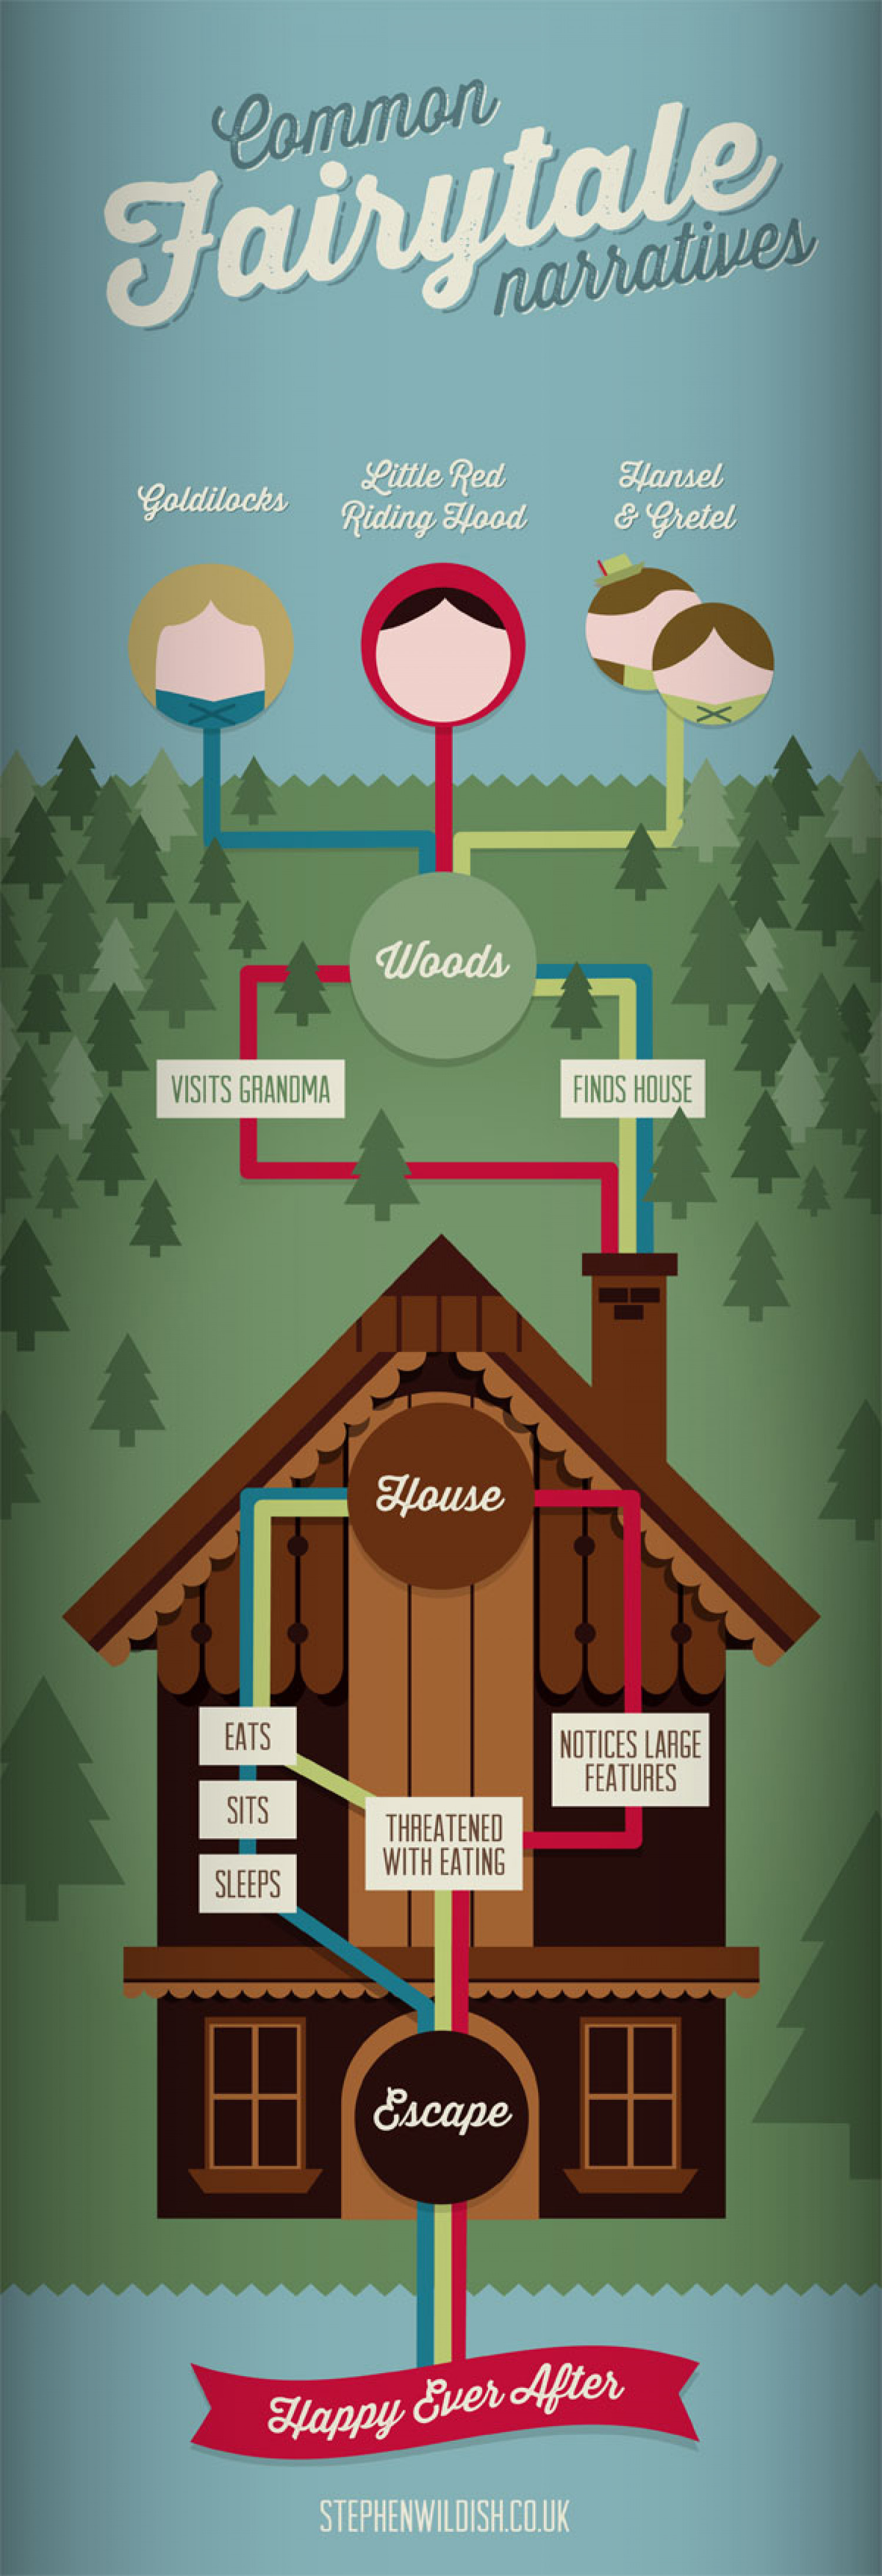 Common Fairytale Narratives Infographic